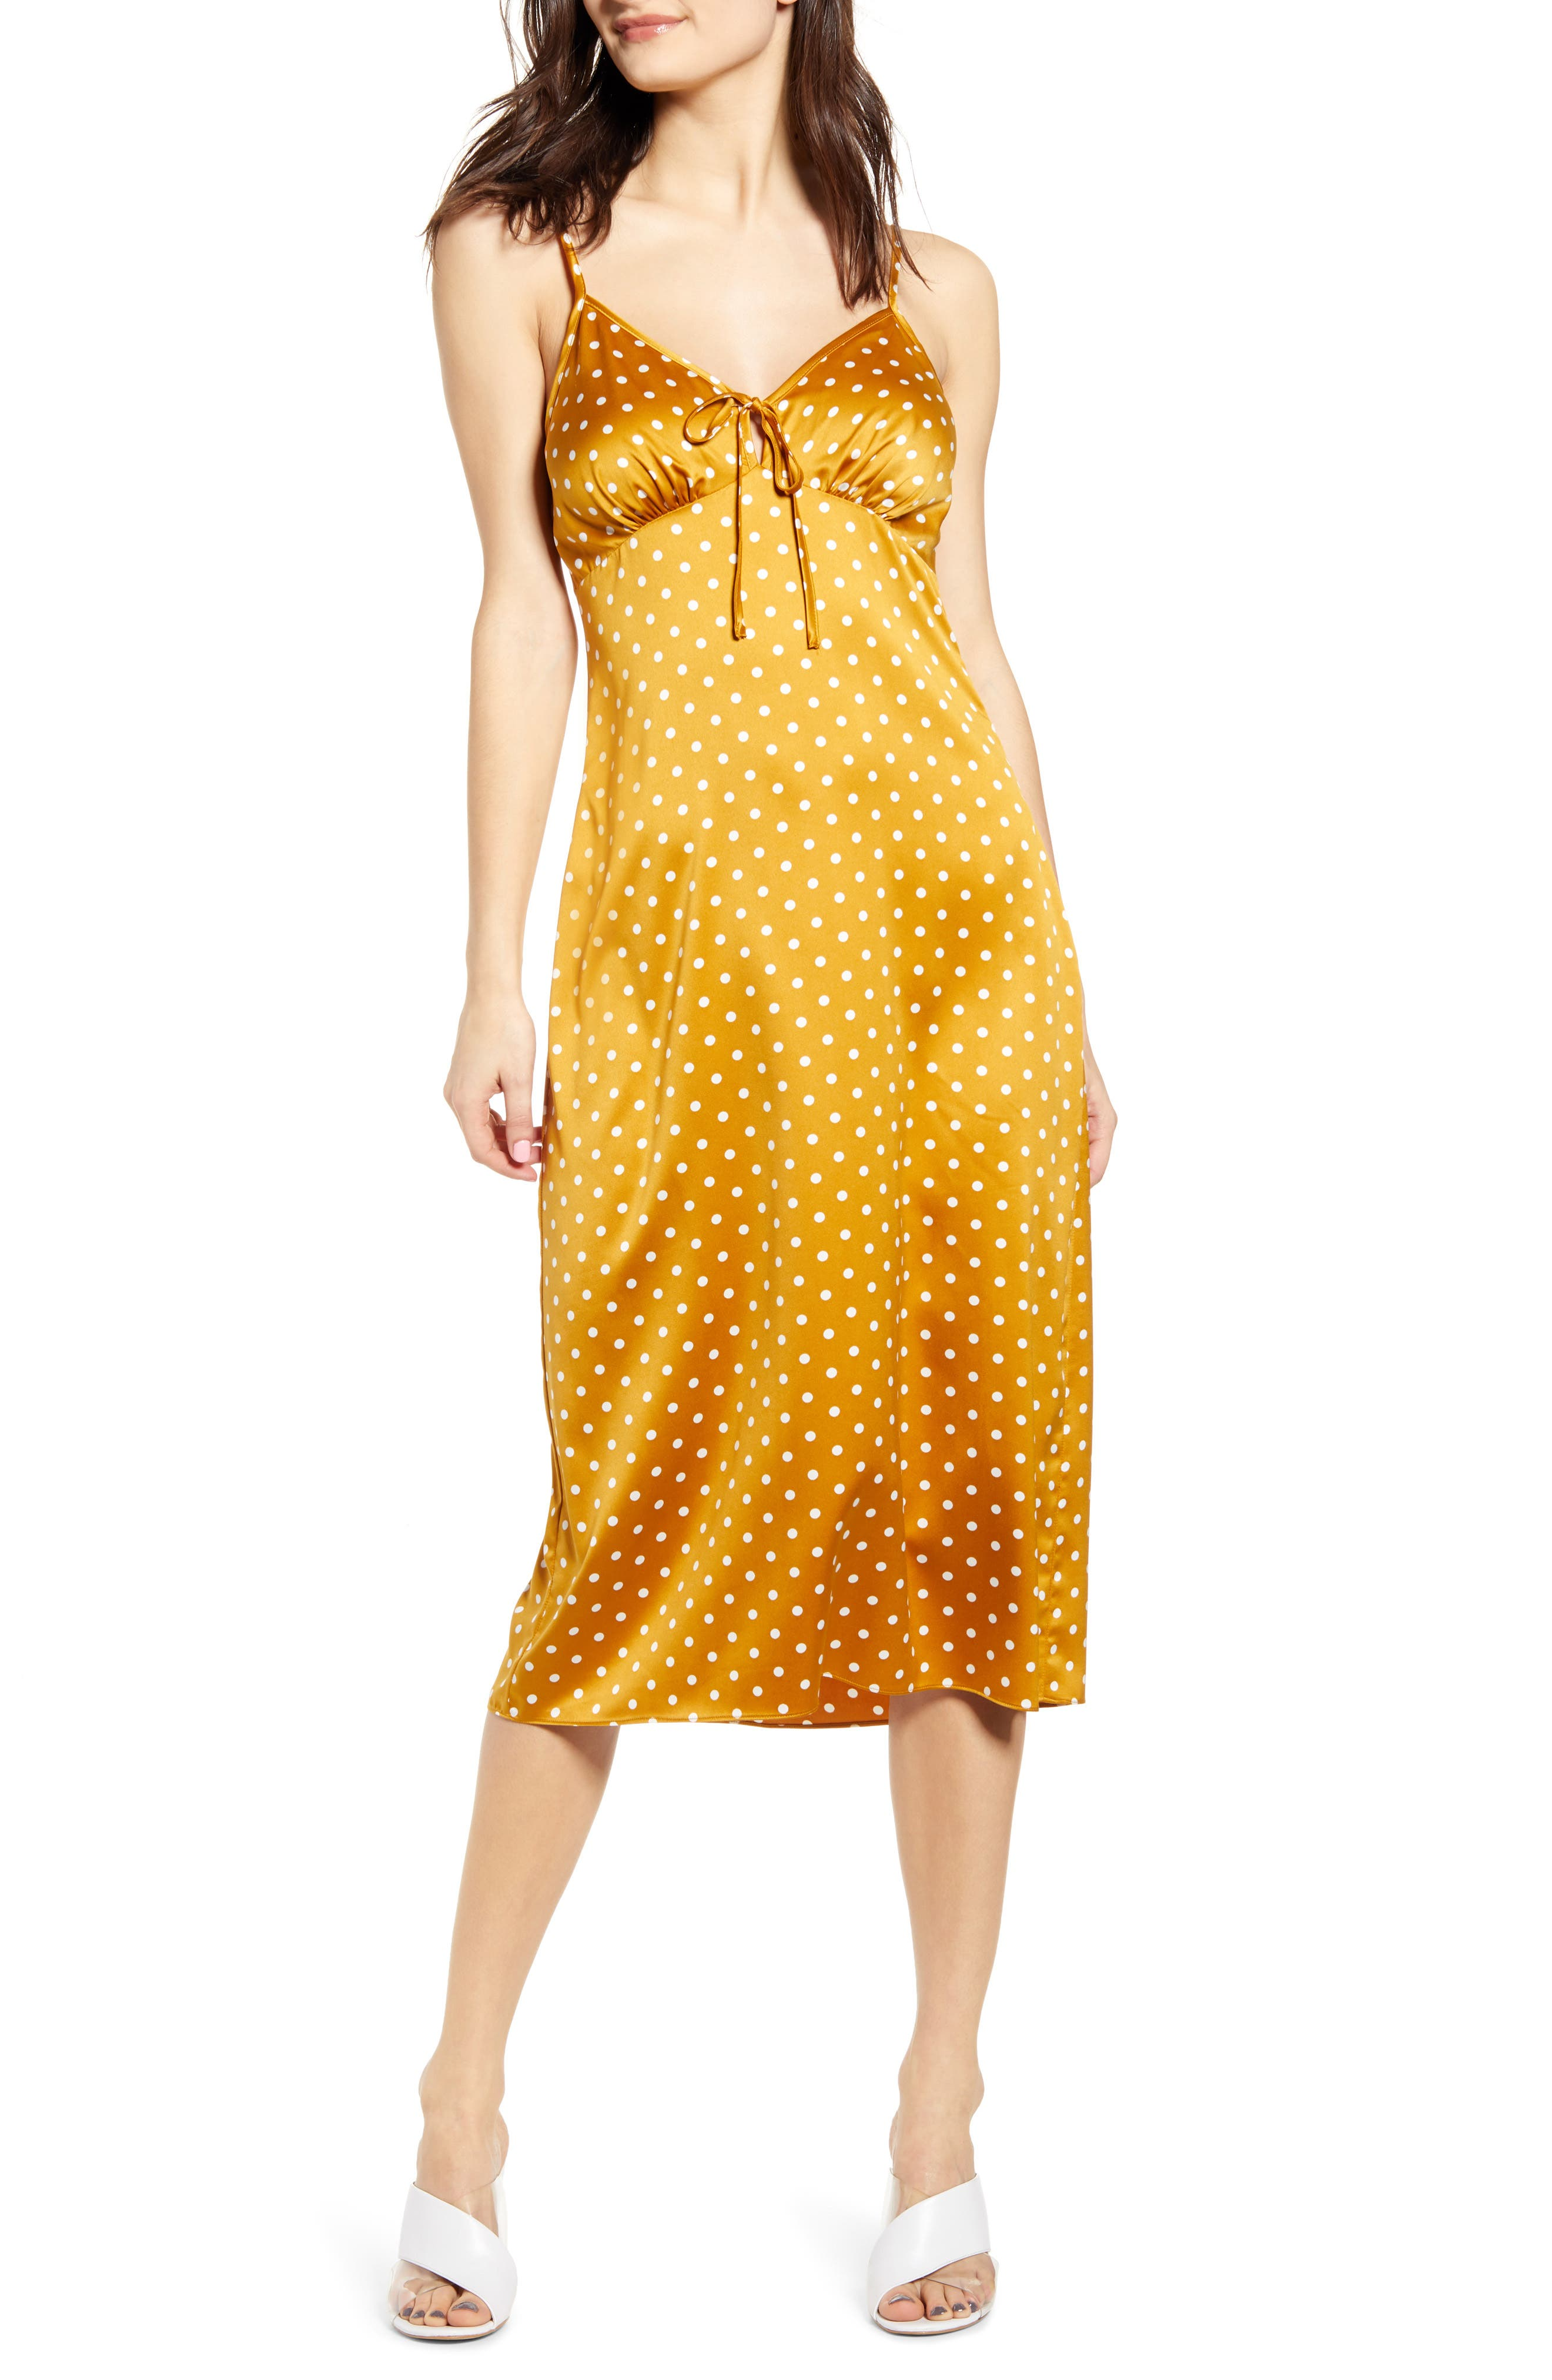 J.o.a. Sleeveless Satin Midi Dress, Yellow